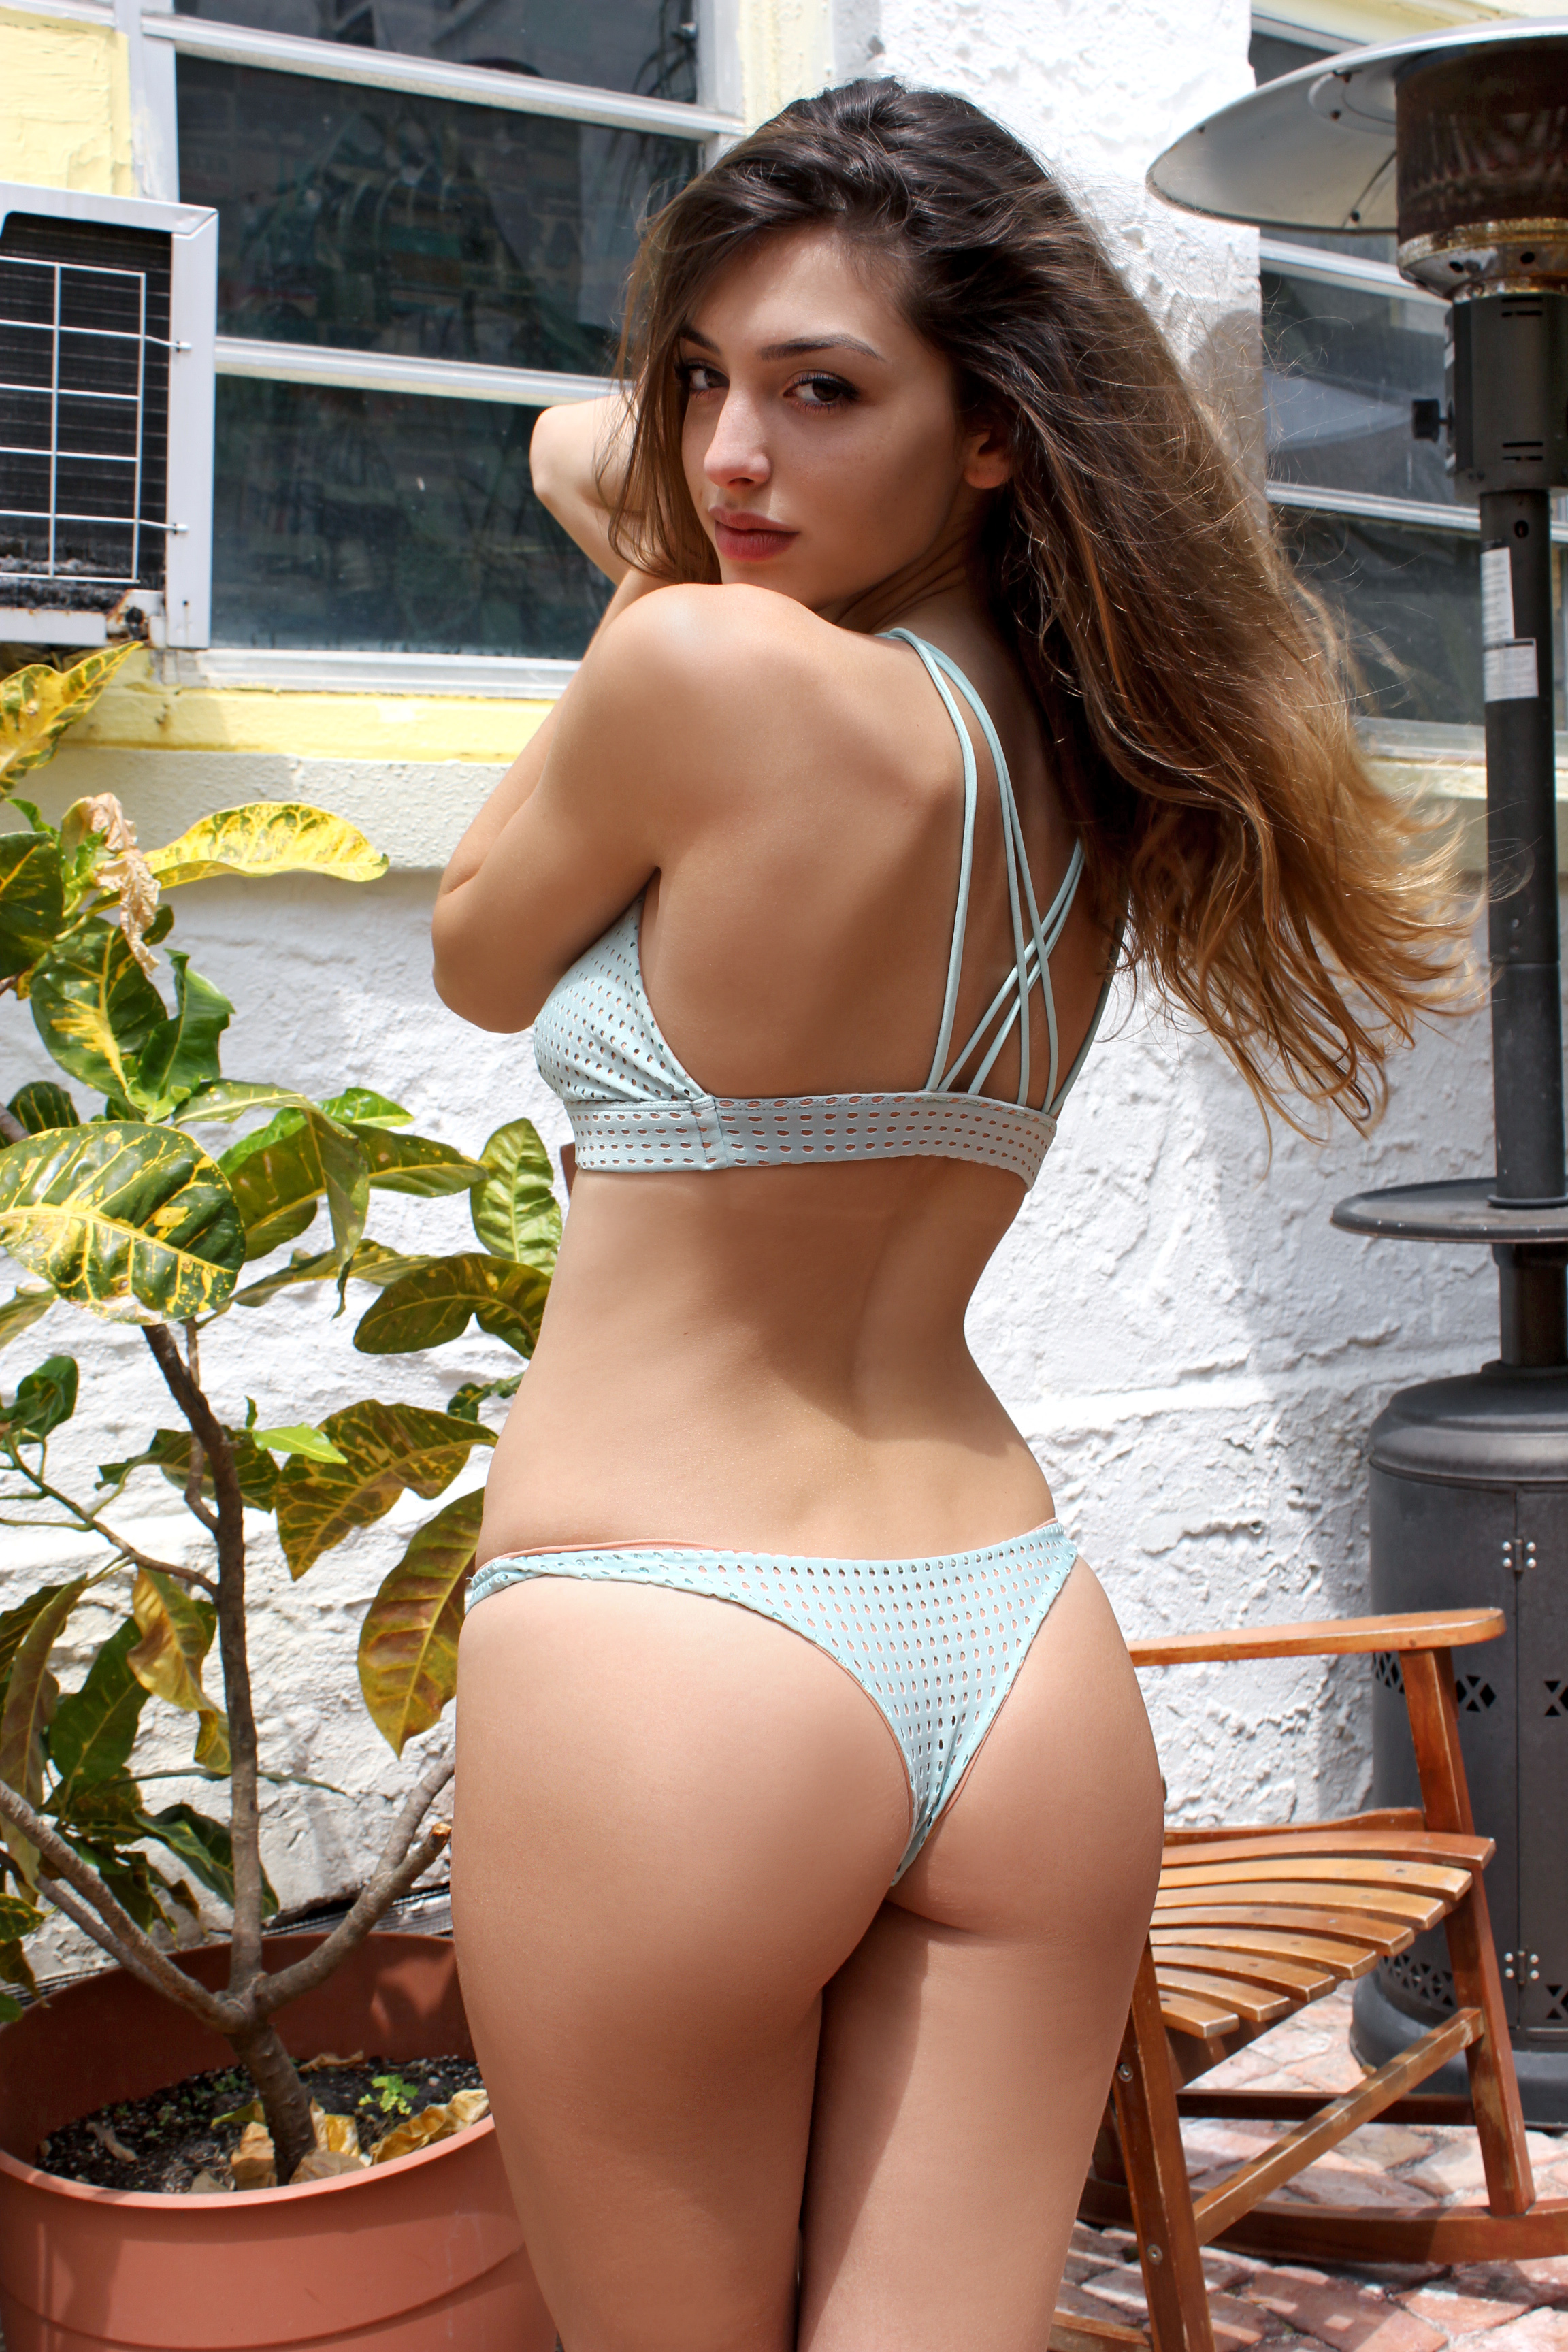 celine farach photo gallery   high quality pics of celine